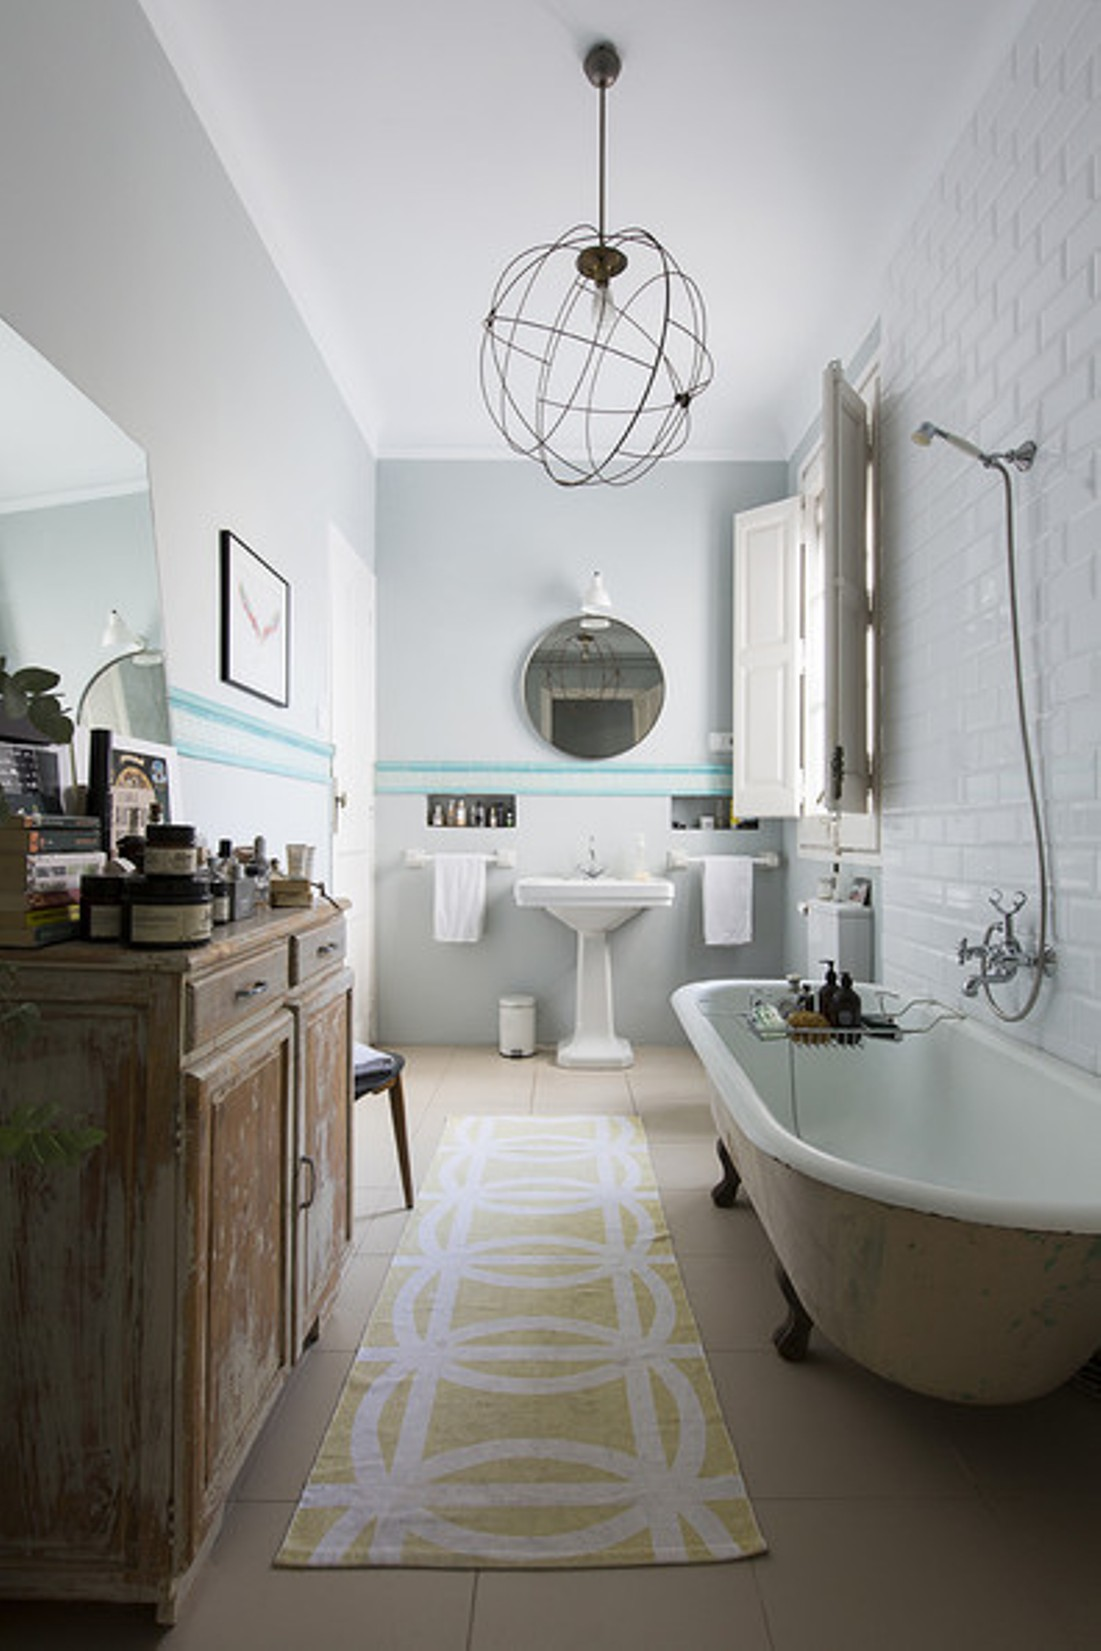 vintage-bathroom-theme-with-clawfoot-tub-and-pedestal-sink